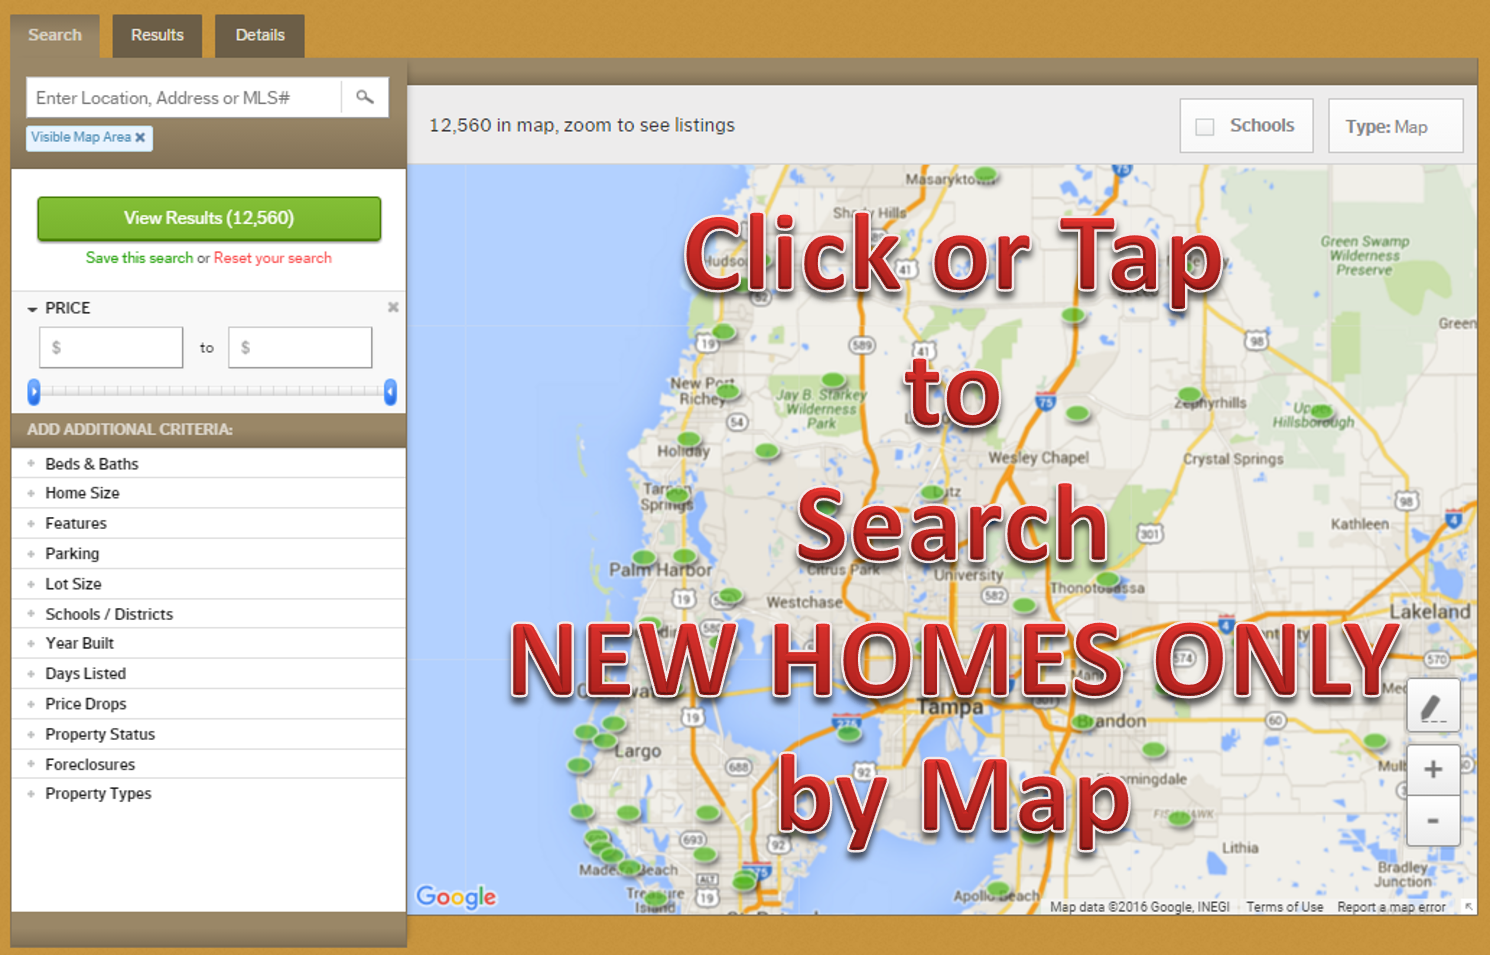 Search the Entire Tampa Area NEW HOMES ONLY for Sale